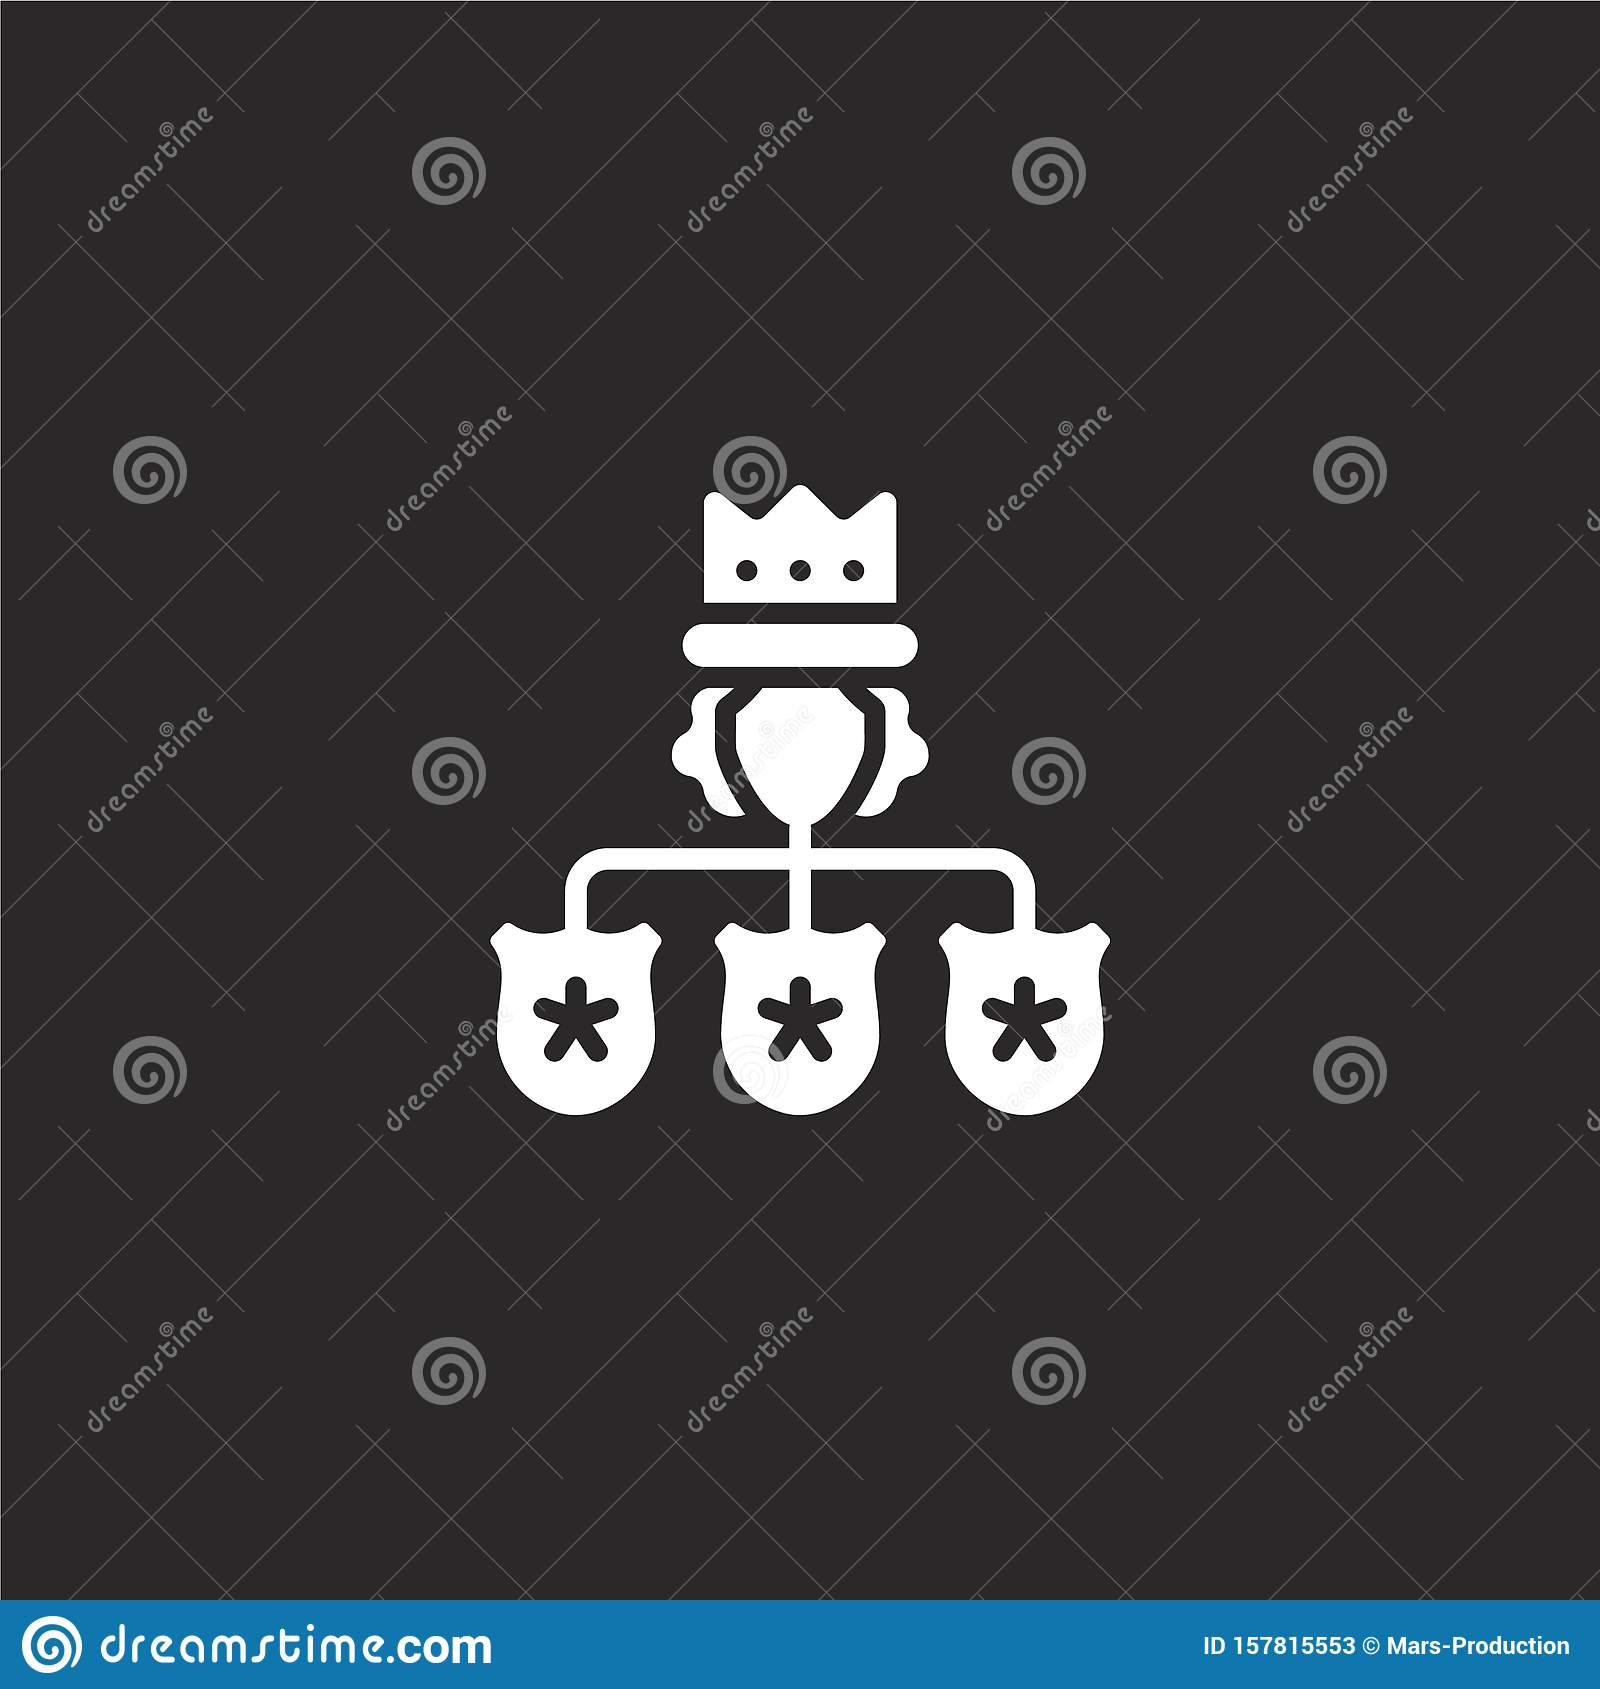 hierarchical structure icon. Filled hierarchical structure icon for website design and mobile, app development. hierarchical